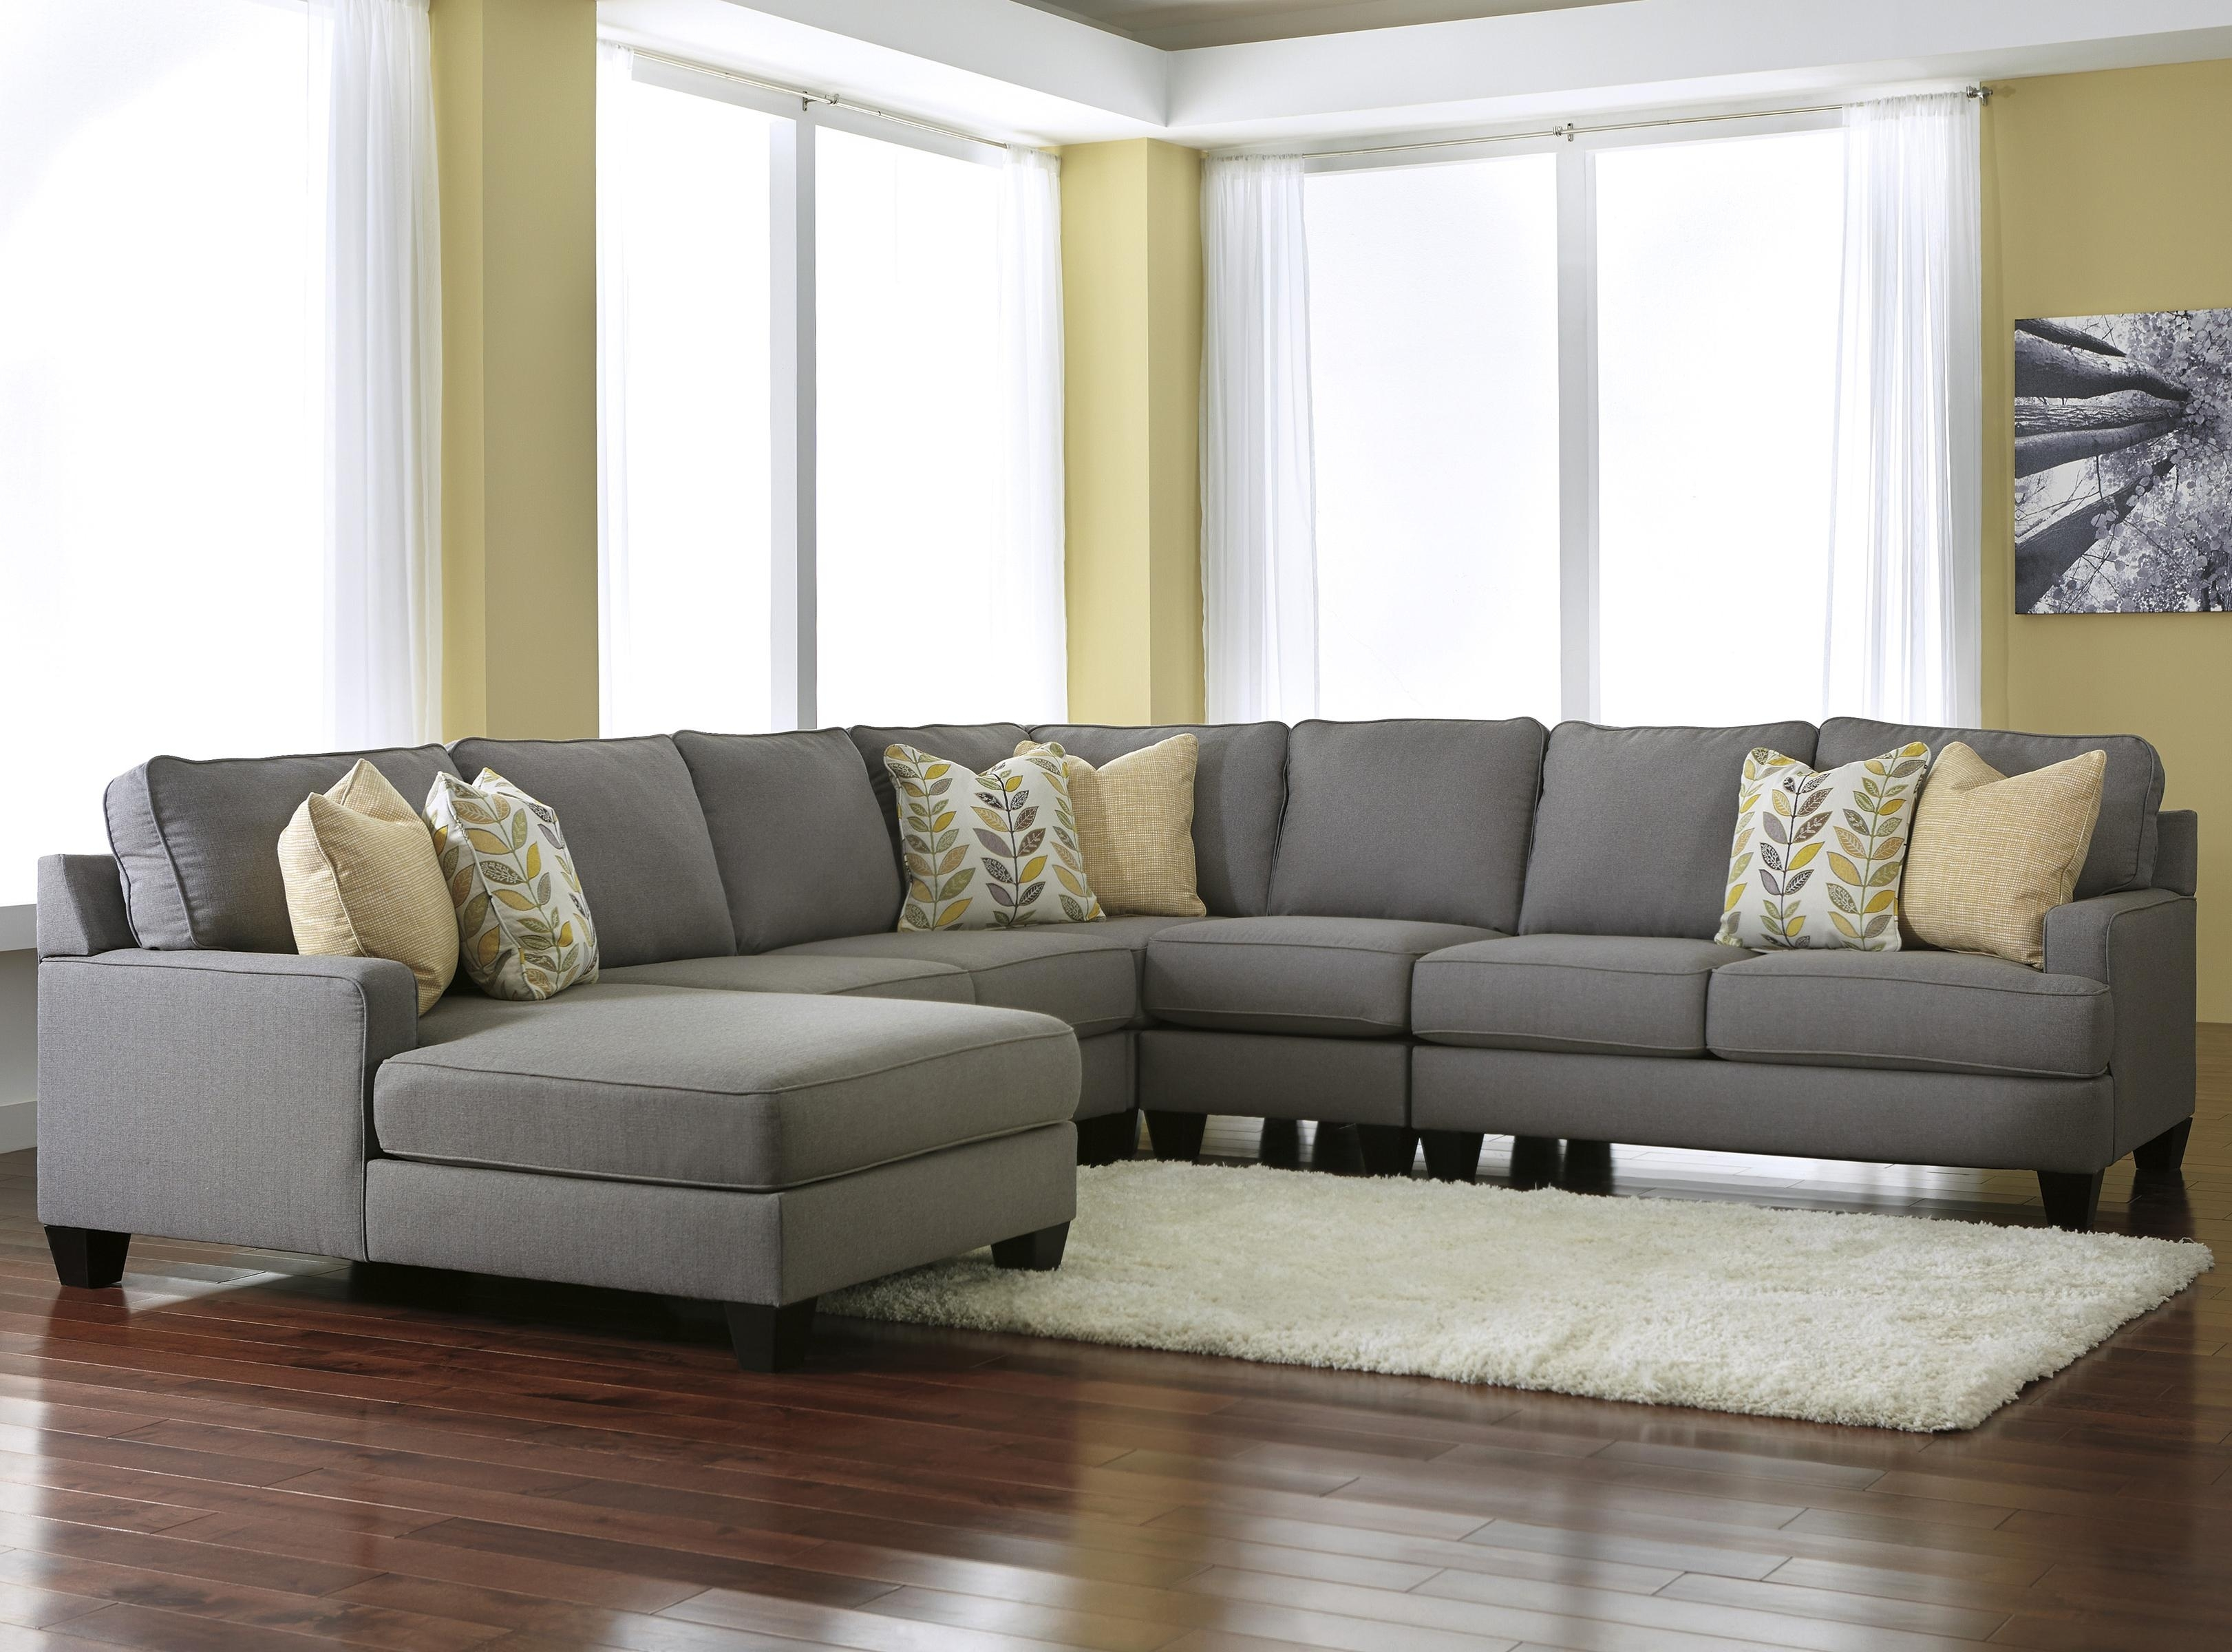 Signature Designashley Chamberly - Alloy Modern 5-Piece in Clarksville Tn Sectional Sofas (Image 4 of 10)